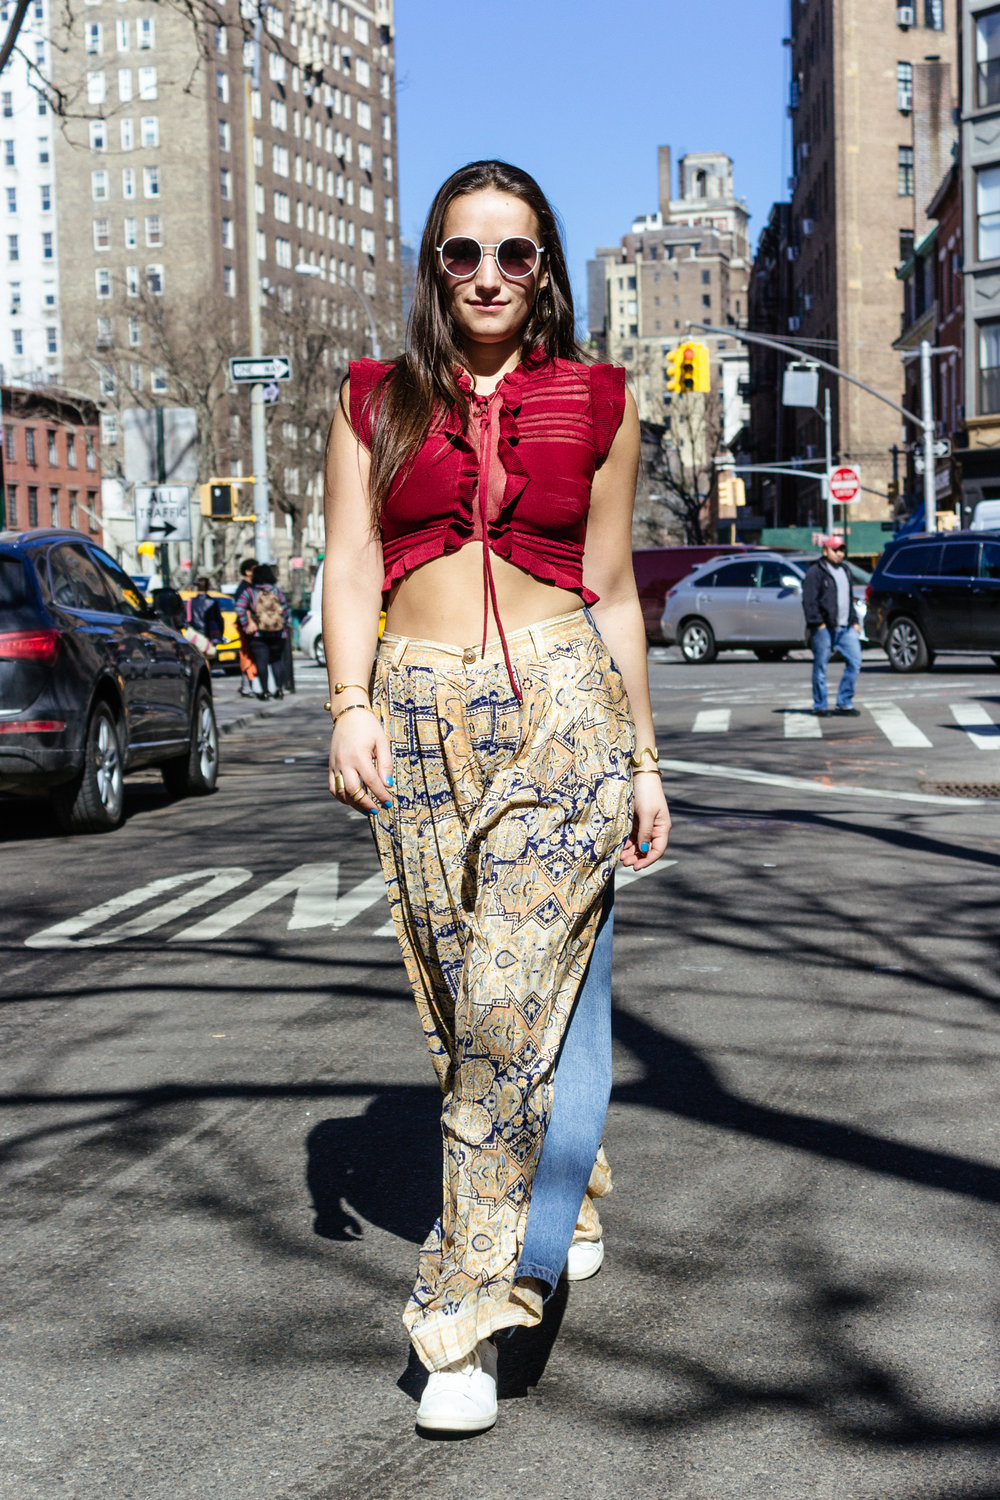 SOPHIE BICKLEY YIN 2MY YANG SISTER FASHION BLOGGERS NYC FREE PEOPLE DANCE PARTY PANTS POST